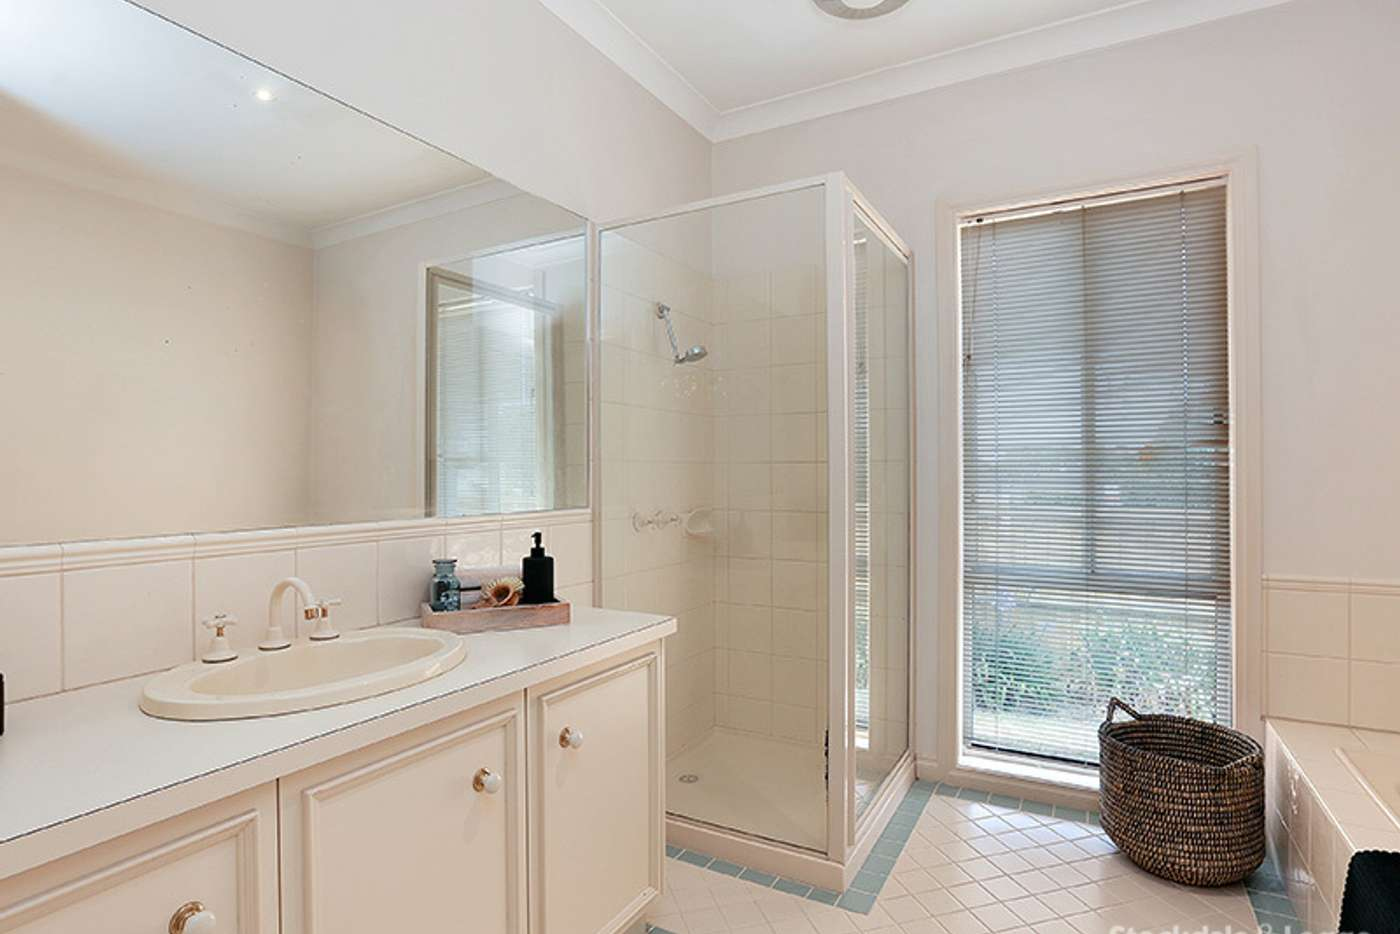 Sixth view of Homely house listing, 196 South Valley Road, Highton VIC 3216